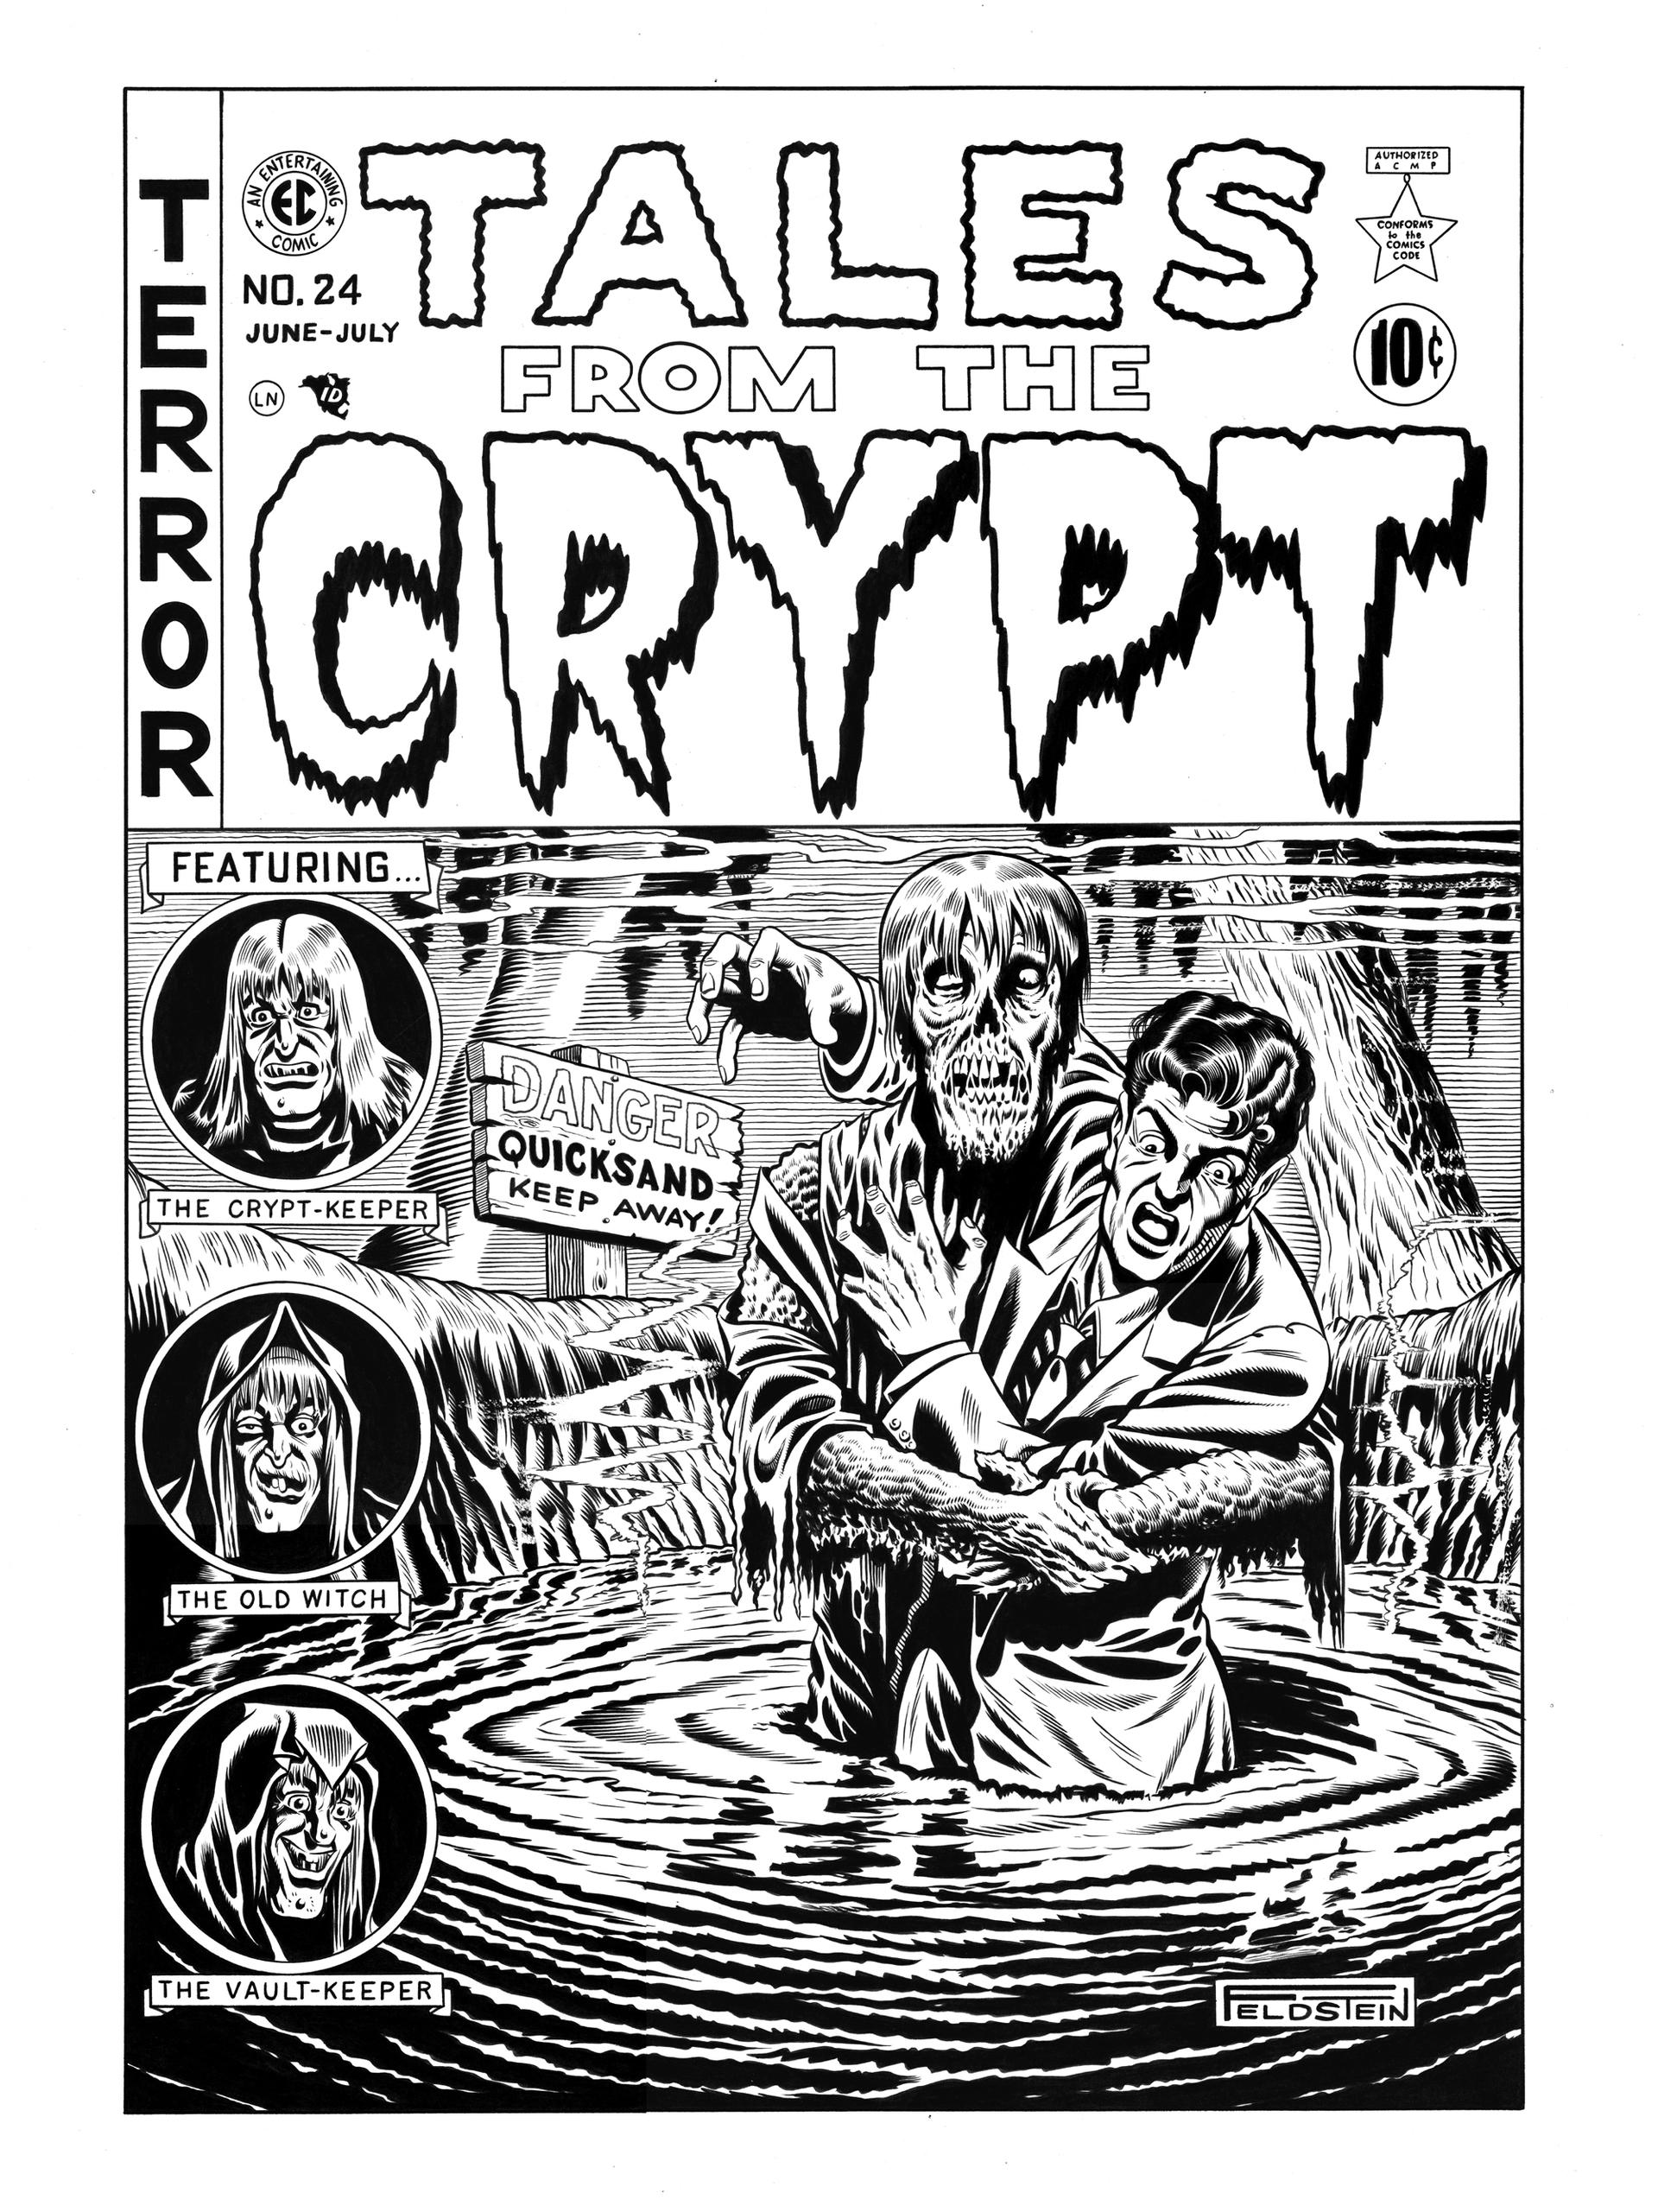 Tales from the Crypt #24 Cover Recreation